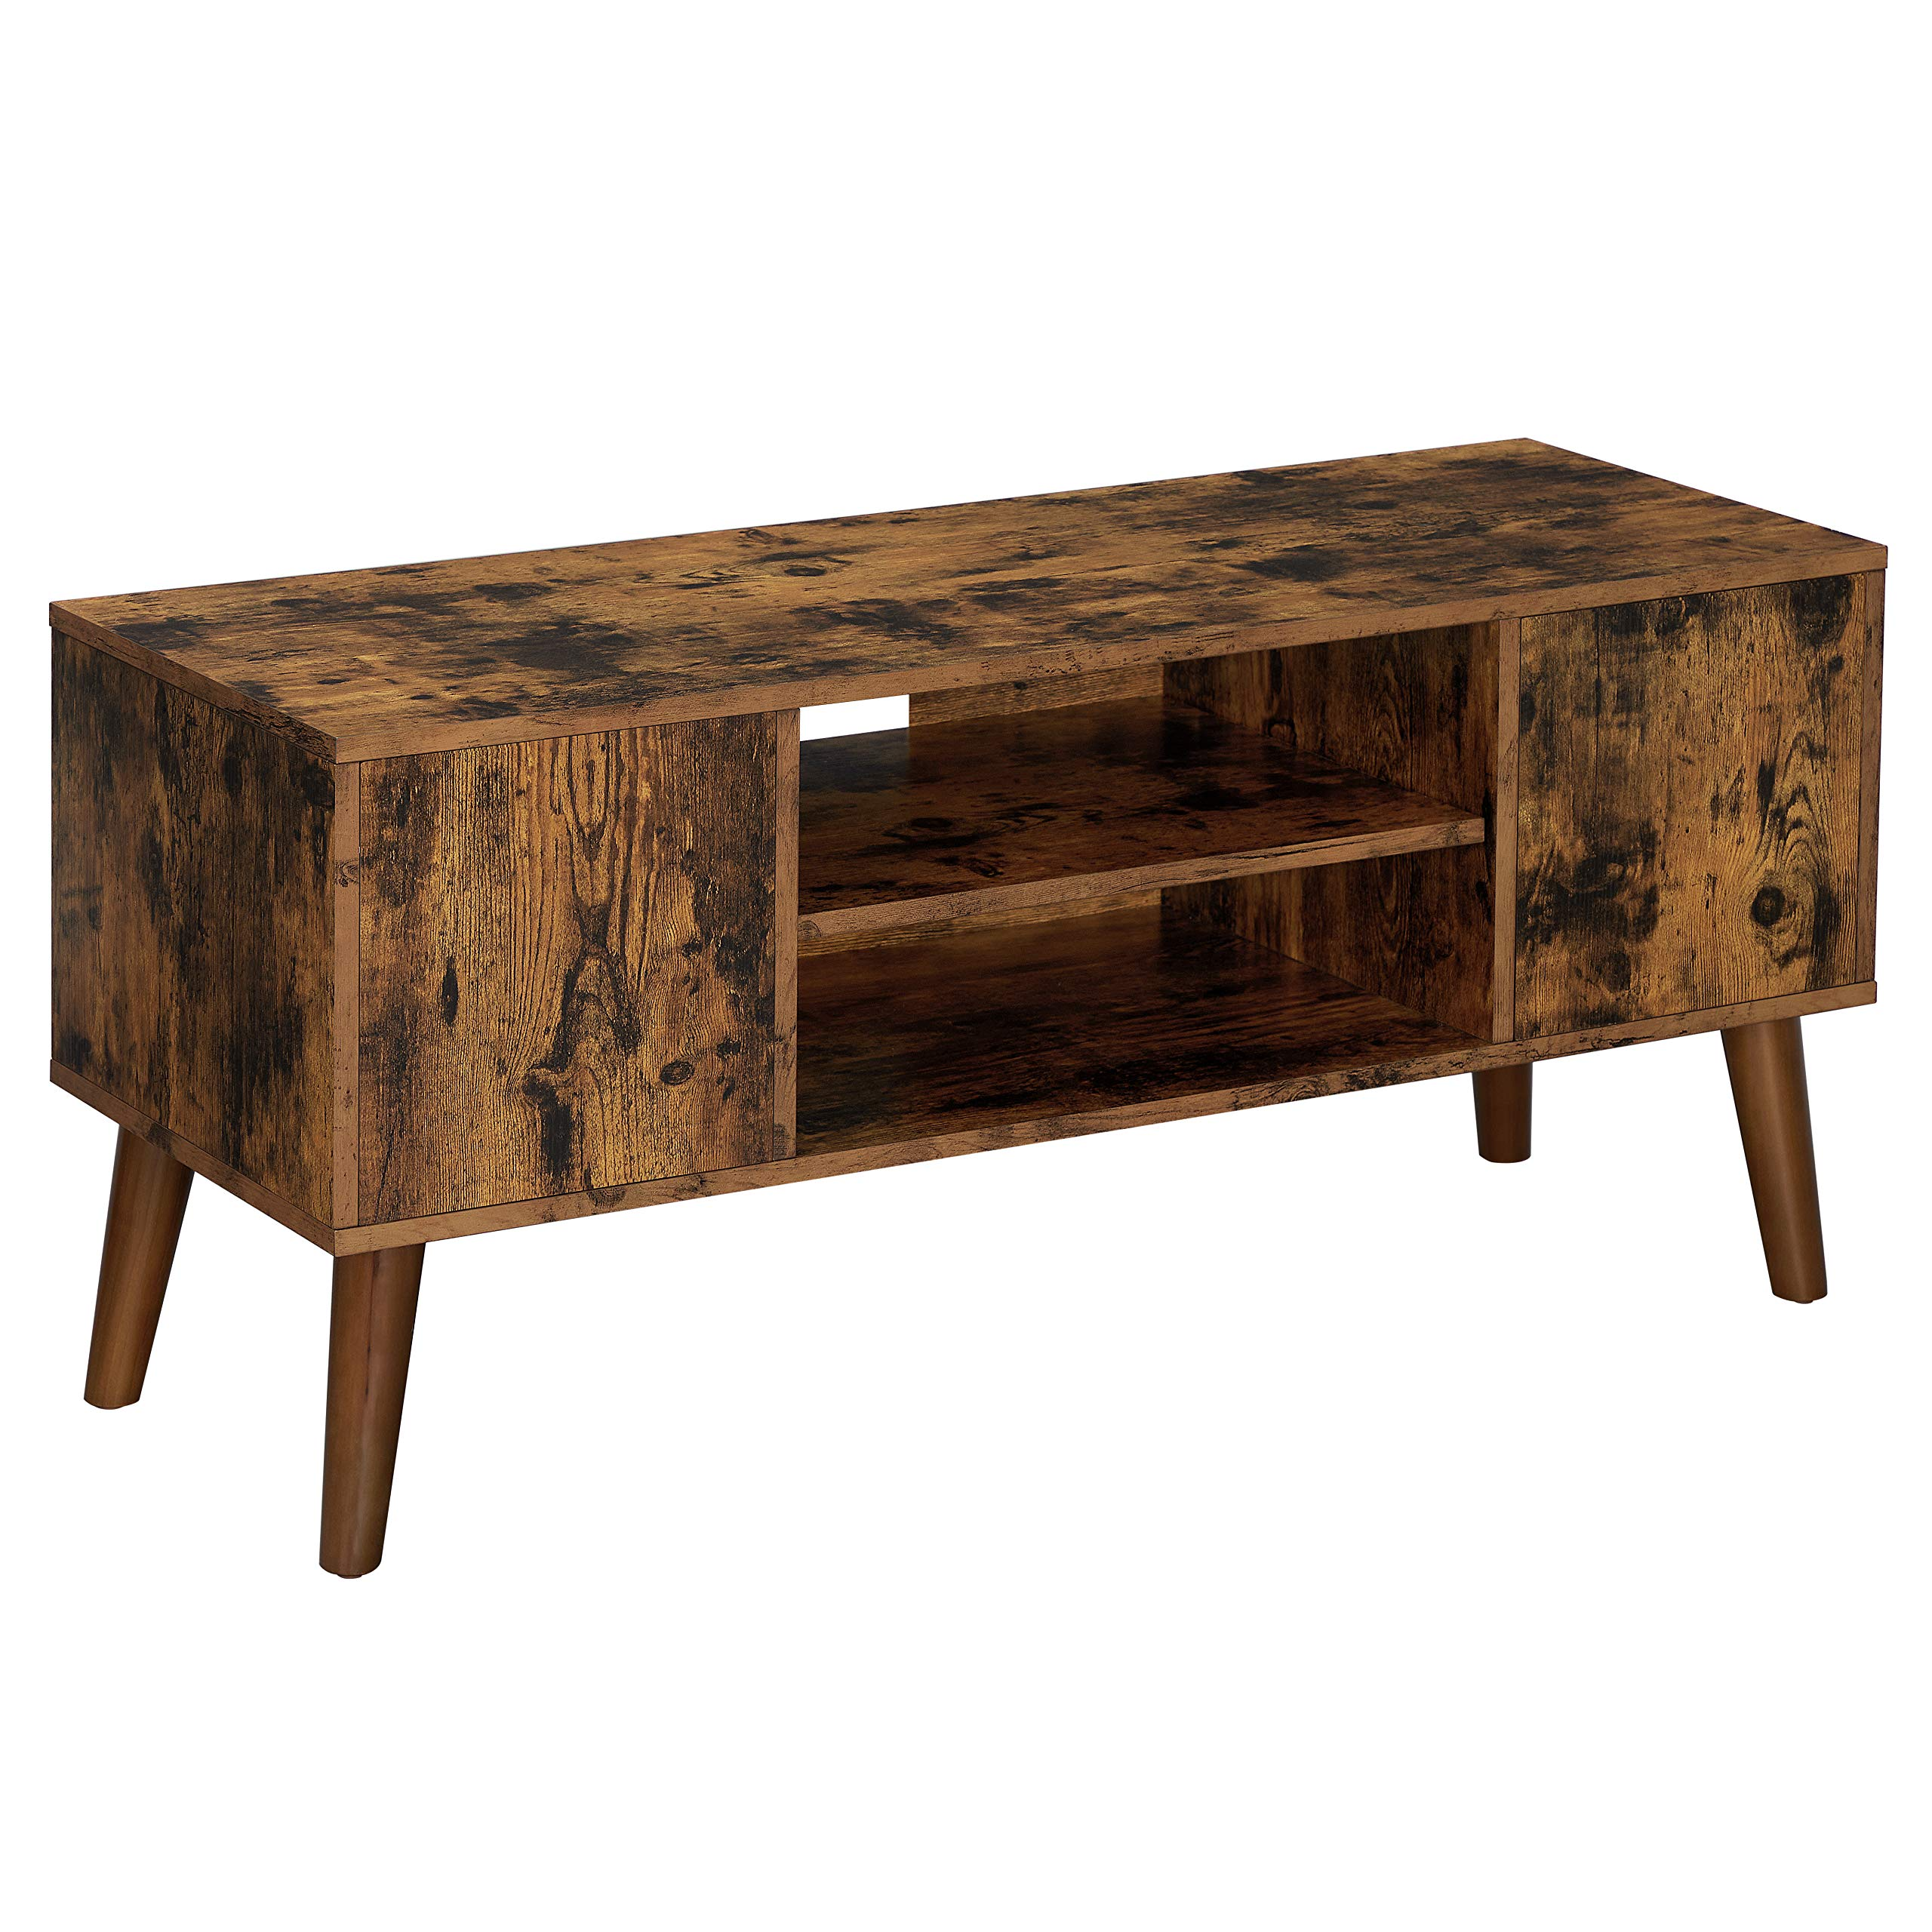 VASAGLE Retro TV Stand, TV Console, Mid-Century Modern Entertainment Center for Flat Screen TV, Cable Box, Gaming Consoles, in Living Room, Entertainment Room, Office LTV08BX